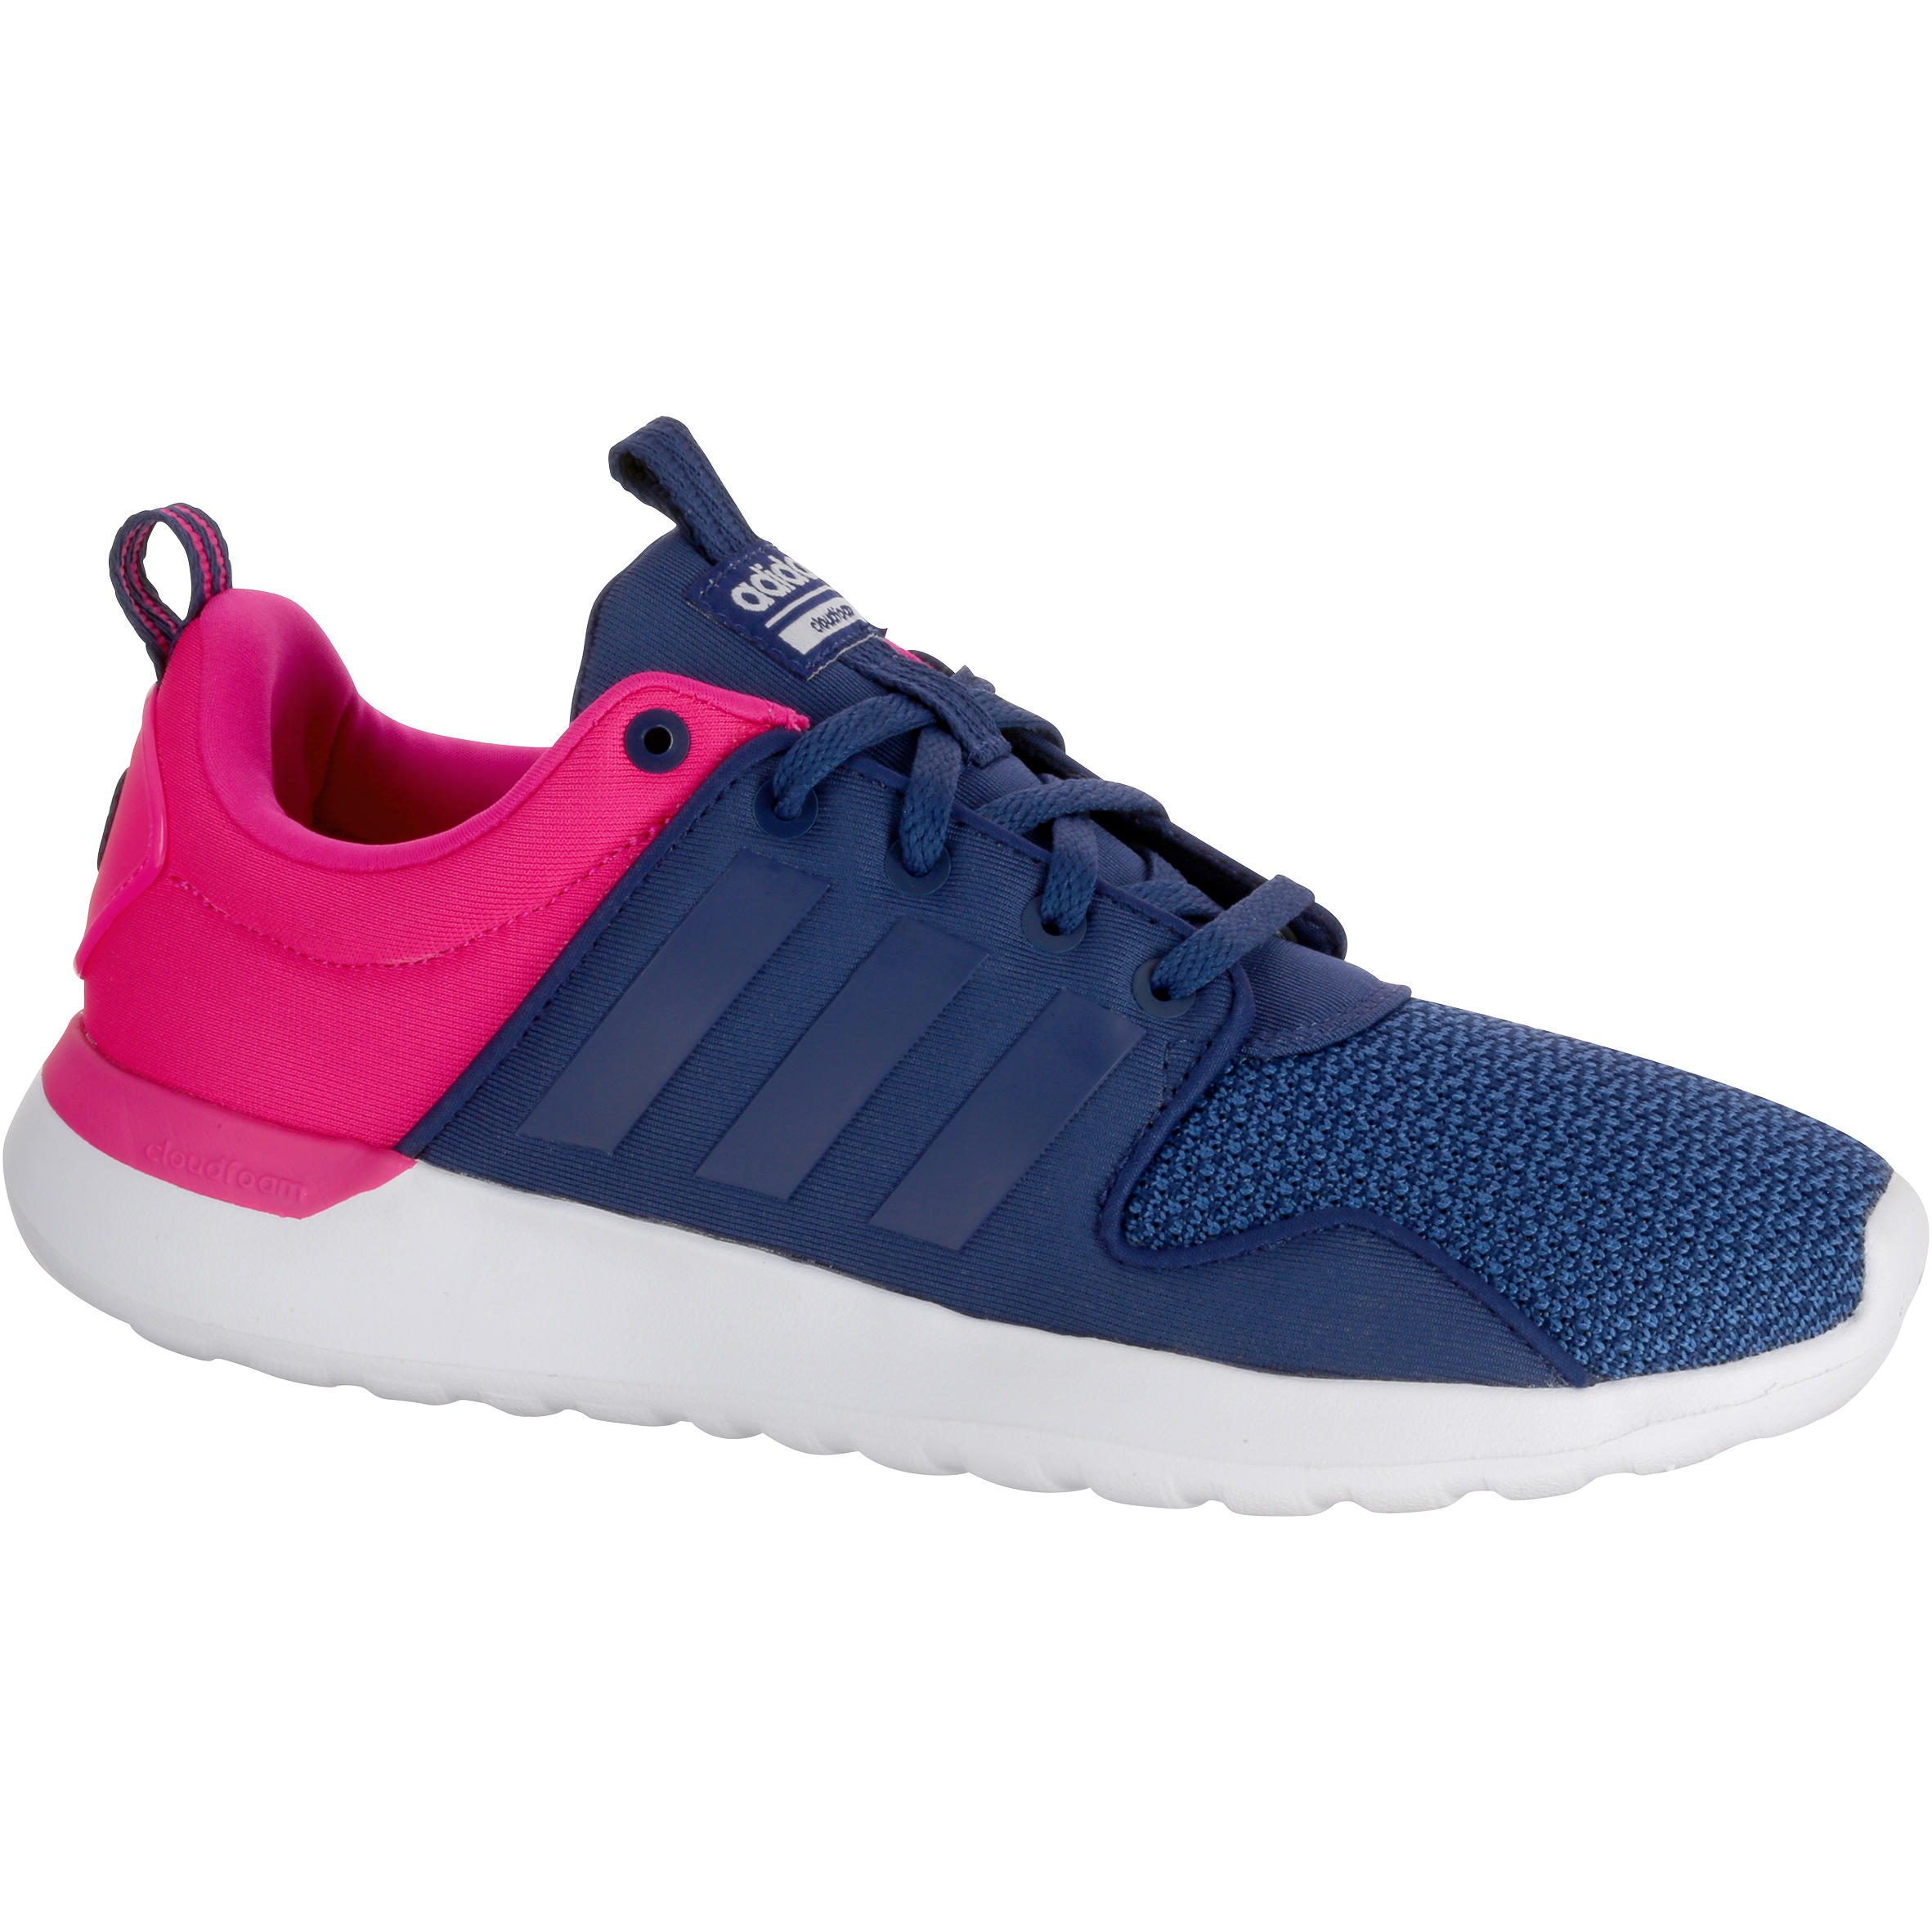 Lite Racer Navy Femme Marche Sportive Chaussures Rose rsQCxhdtB